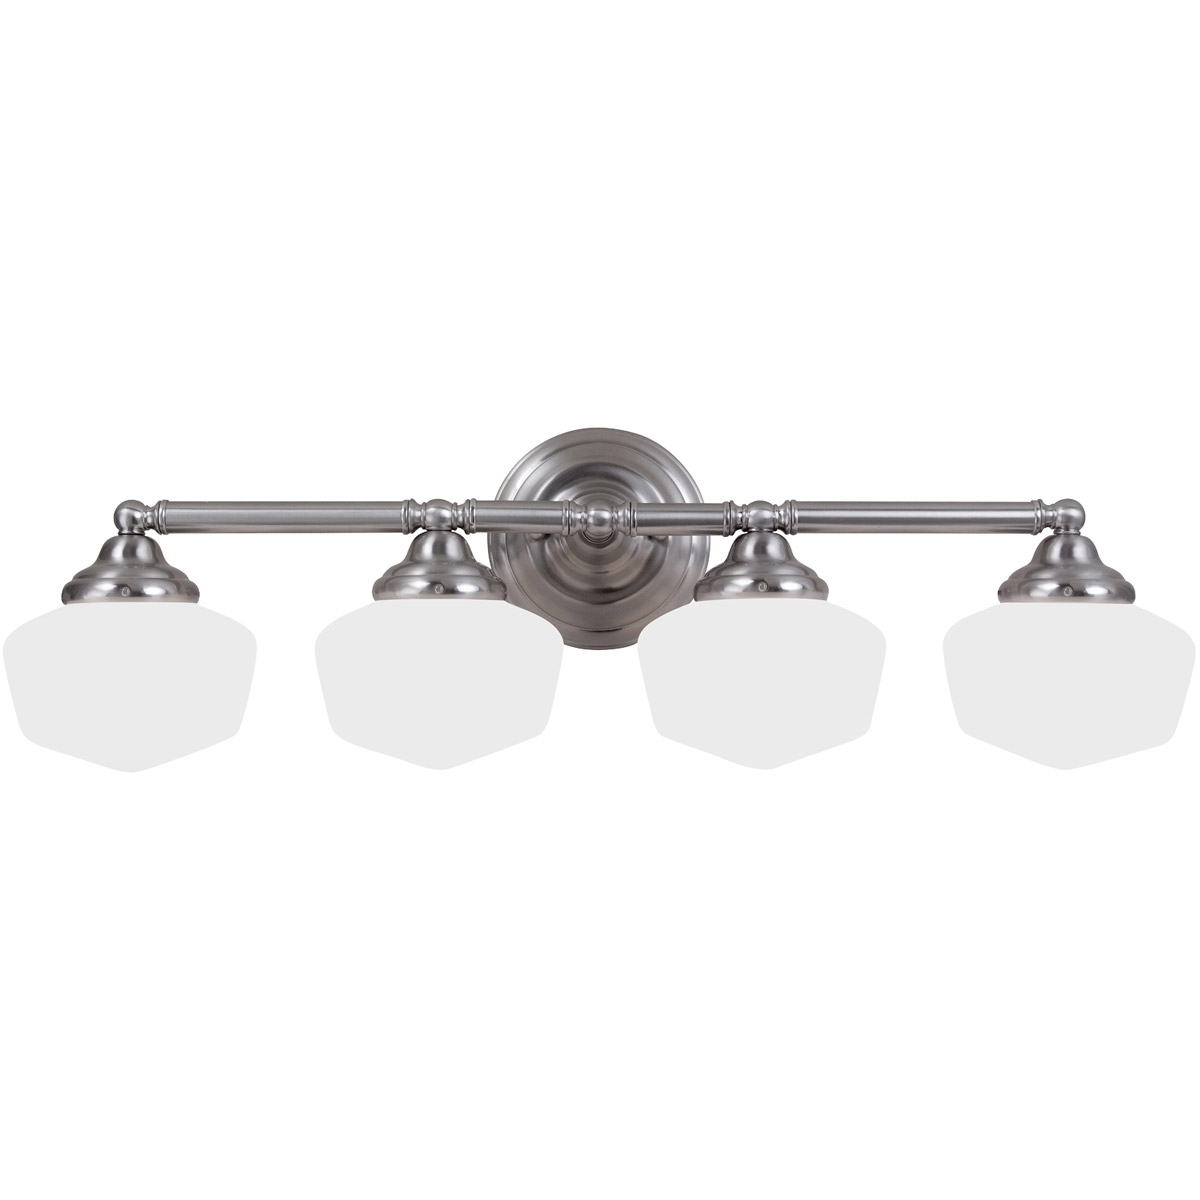 Sea Gull Academy 4 Light Bath Vanity in Brushed Nickel 44439-962 photo